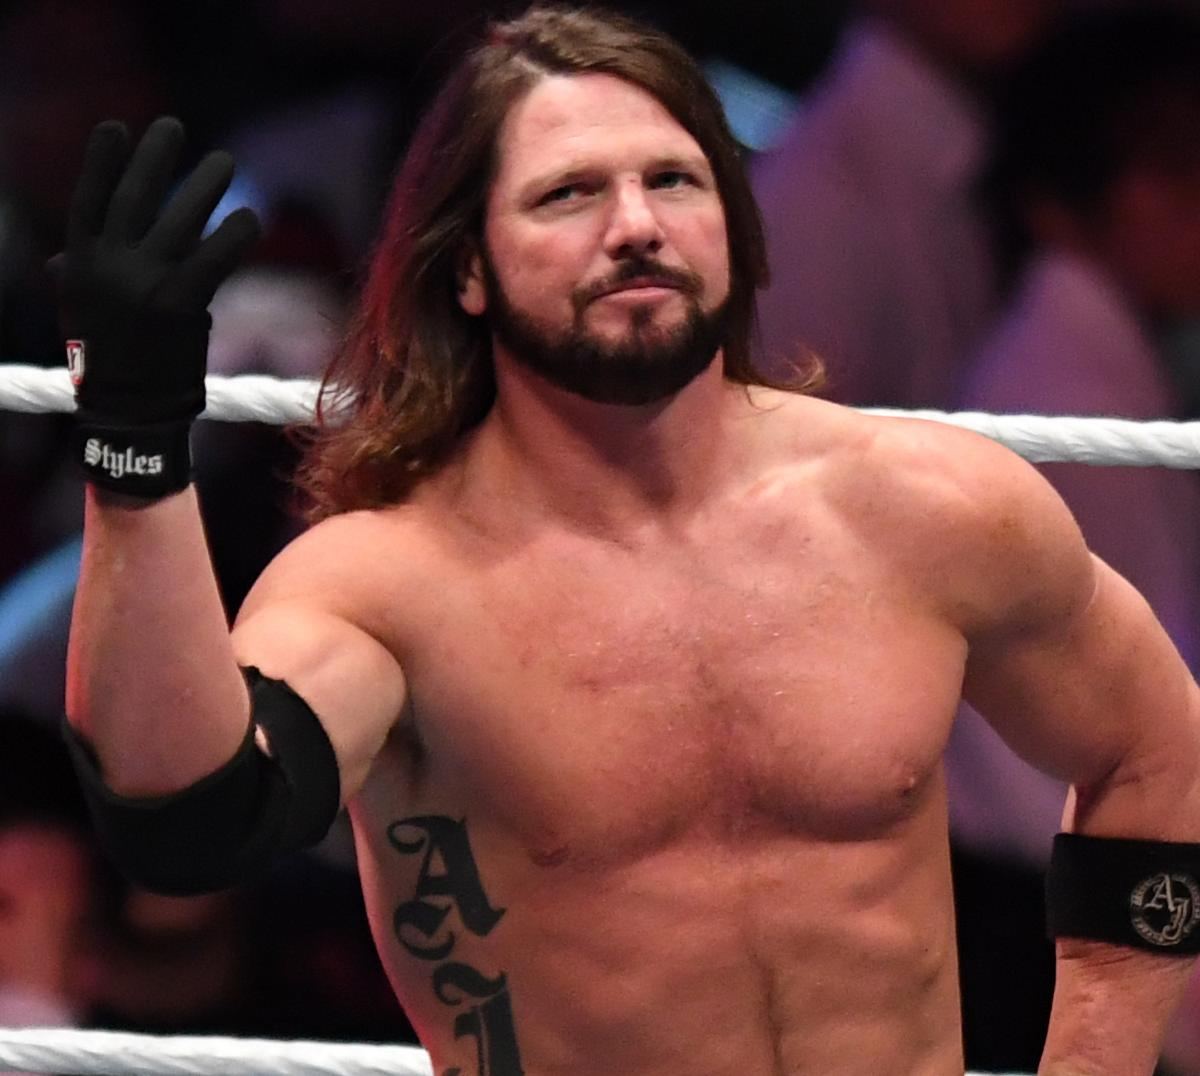 Updated WWE Survivor Series 2019 Match Card Ahead of PPV